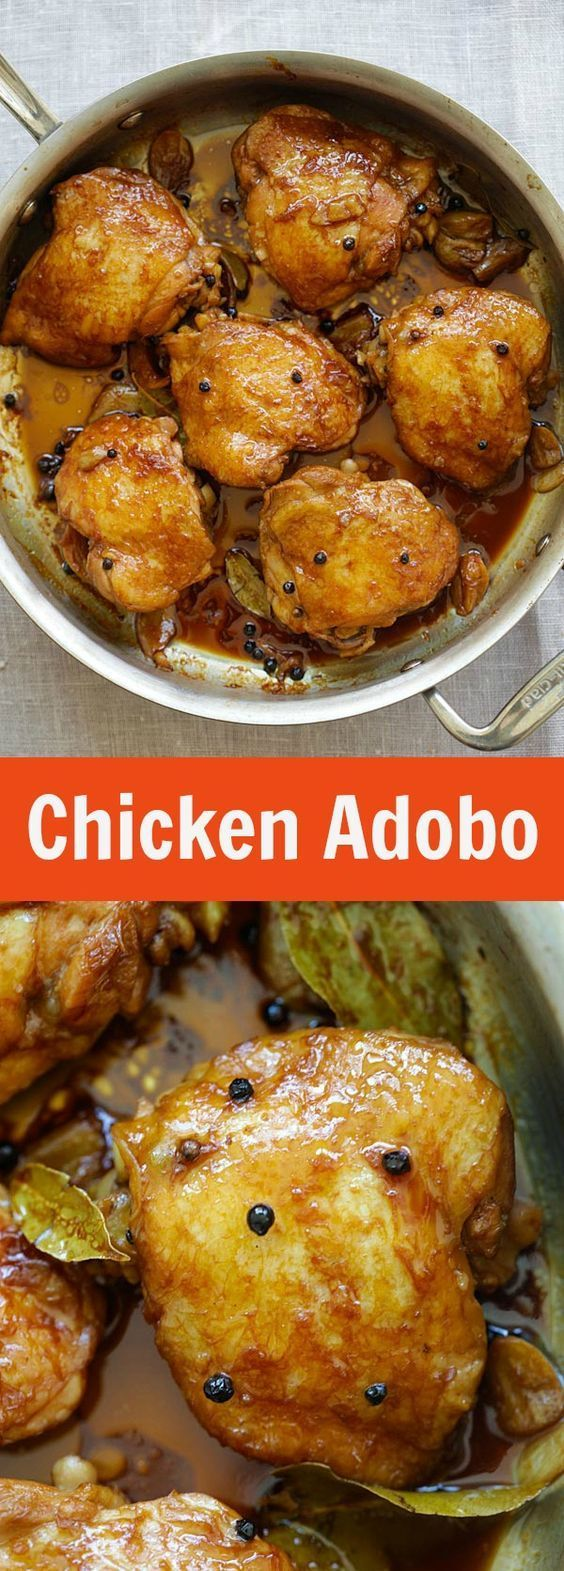 Chicken Adobo - crazy delicious Filipino Chicken Adobo recipe made in one pot. Chicken Abodo is a perfect dinner for the entire family | rasamalaysia.com